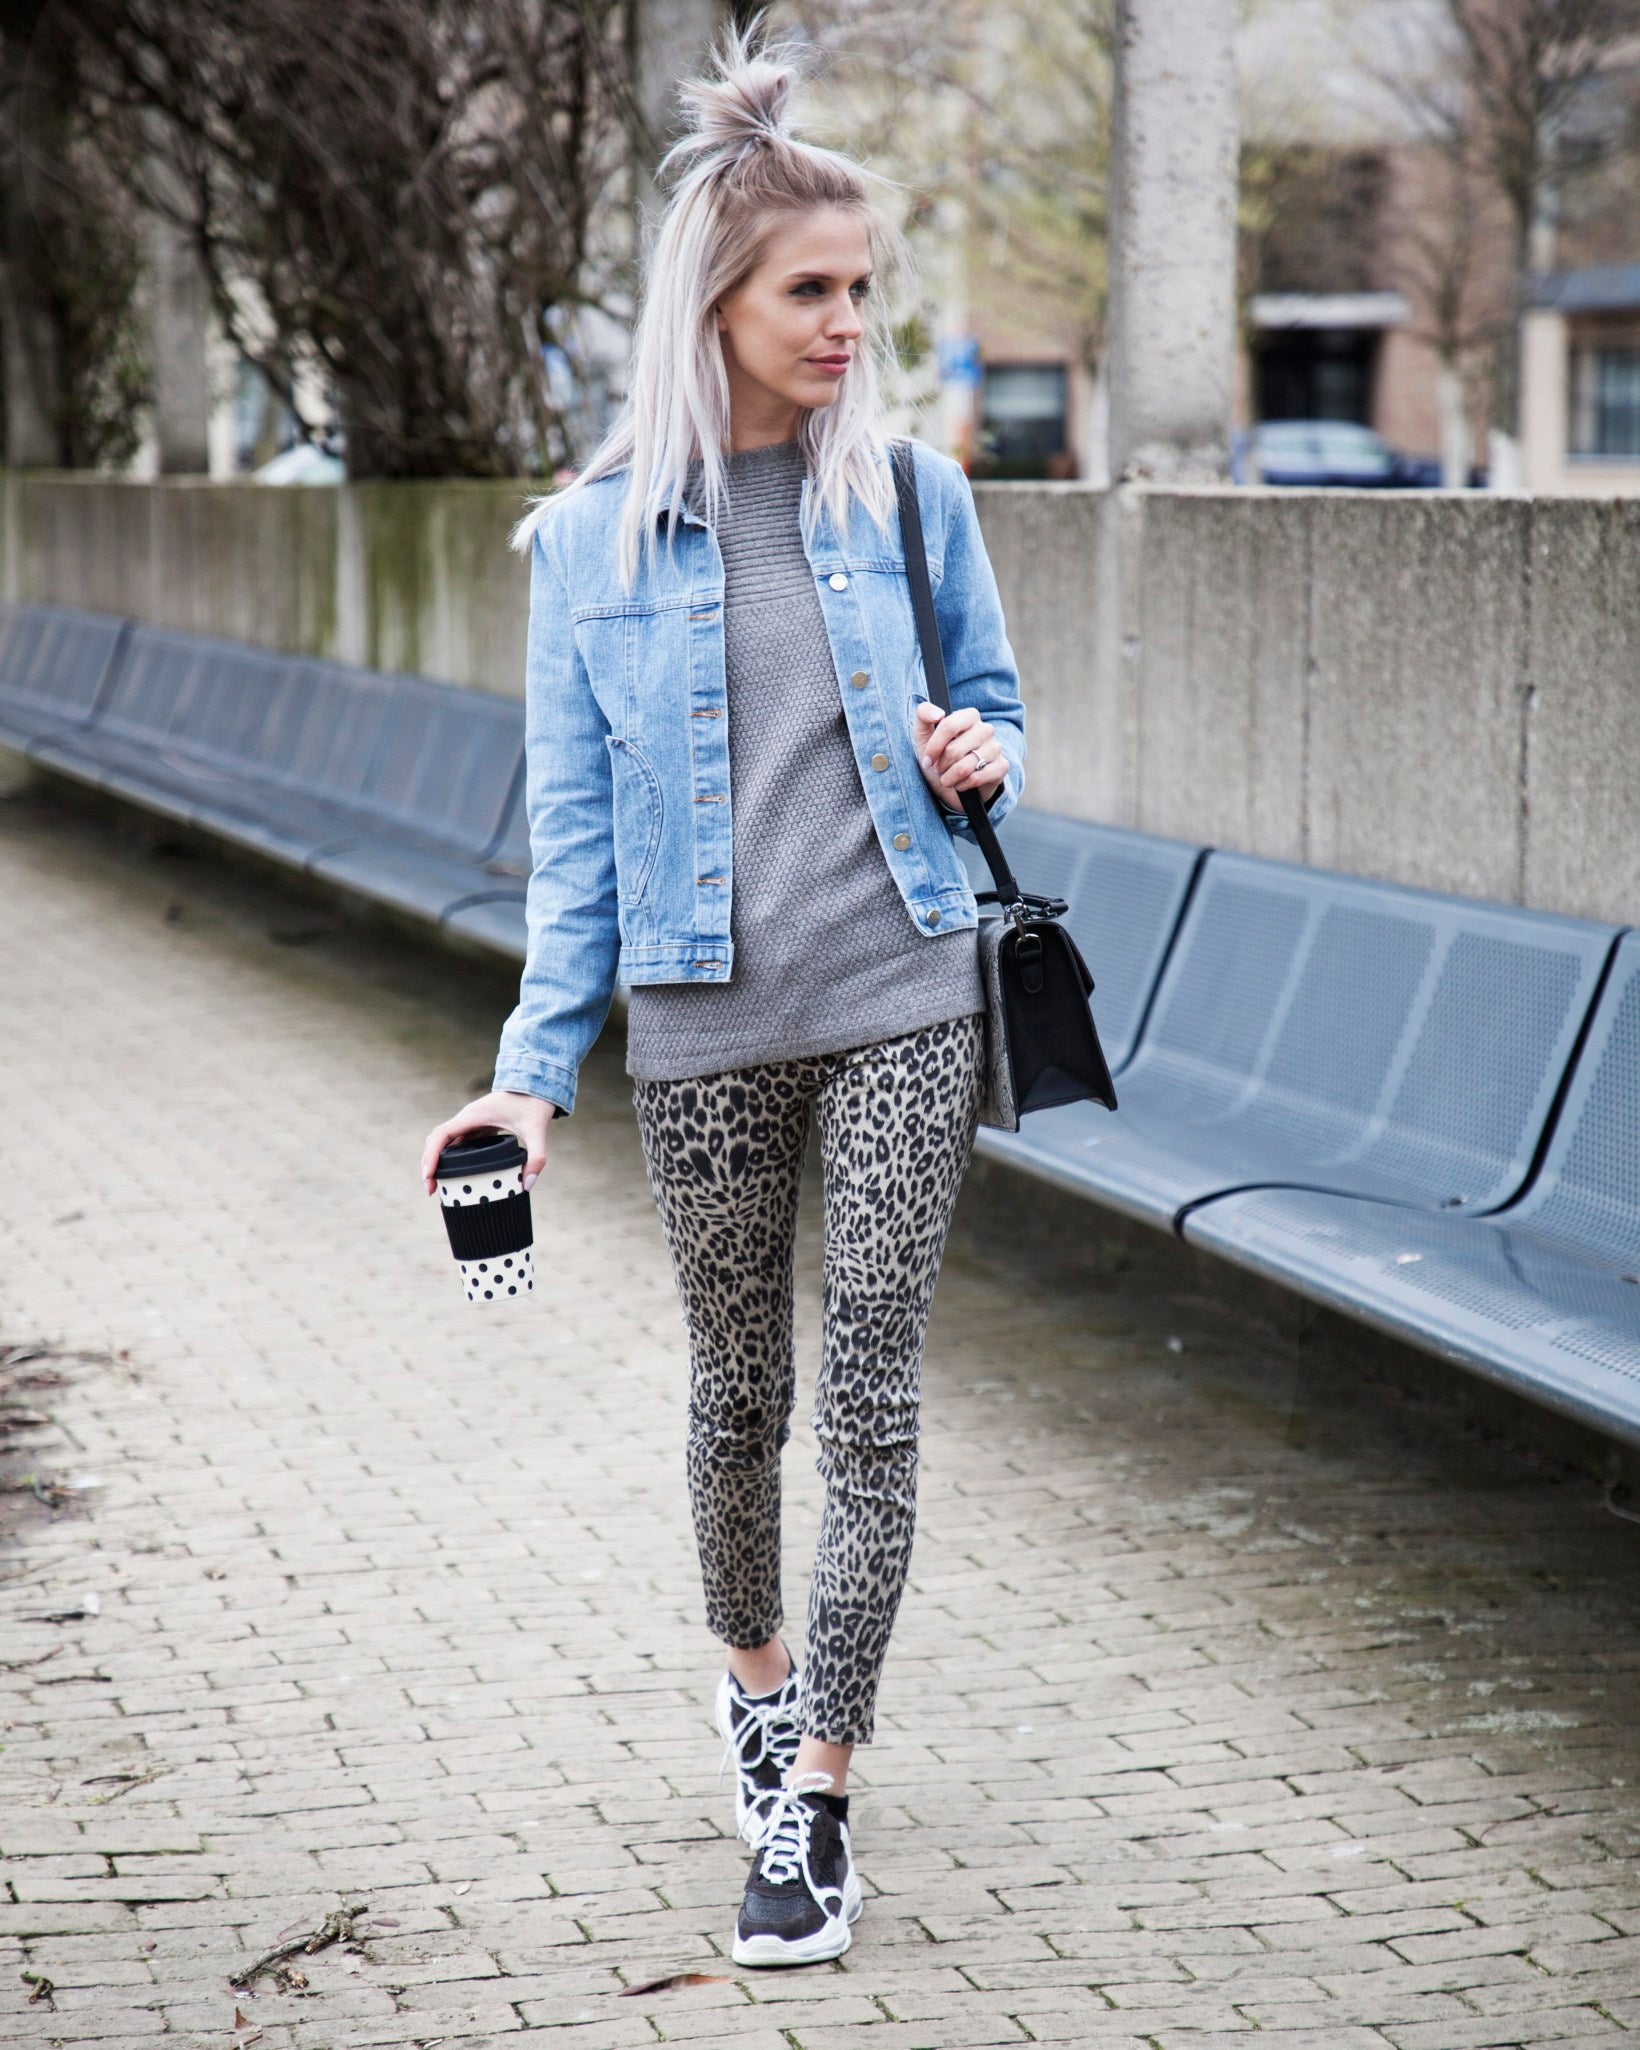 OUTFIT INSPIRATION - CASUAL THURSDAY